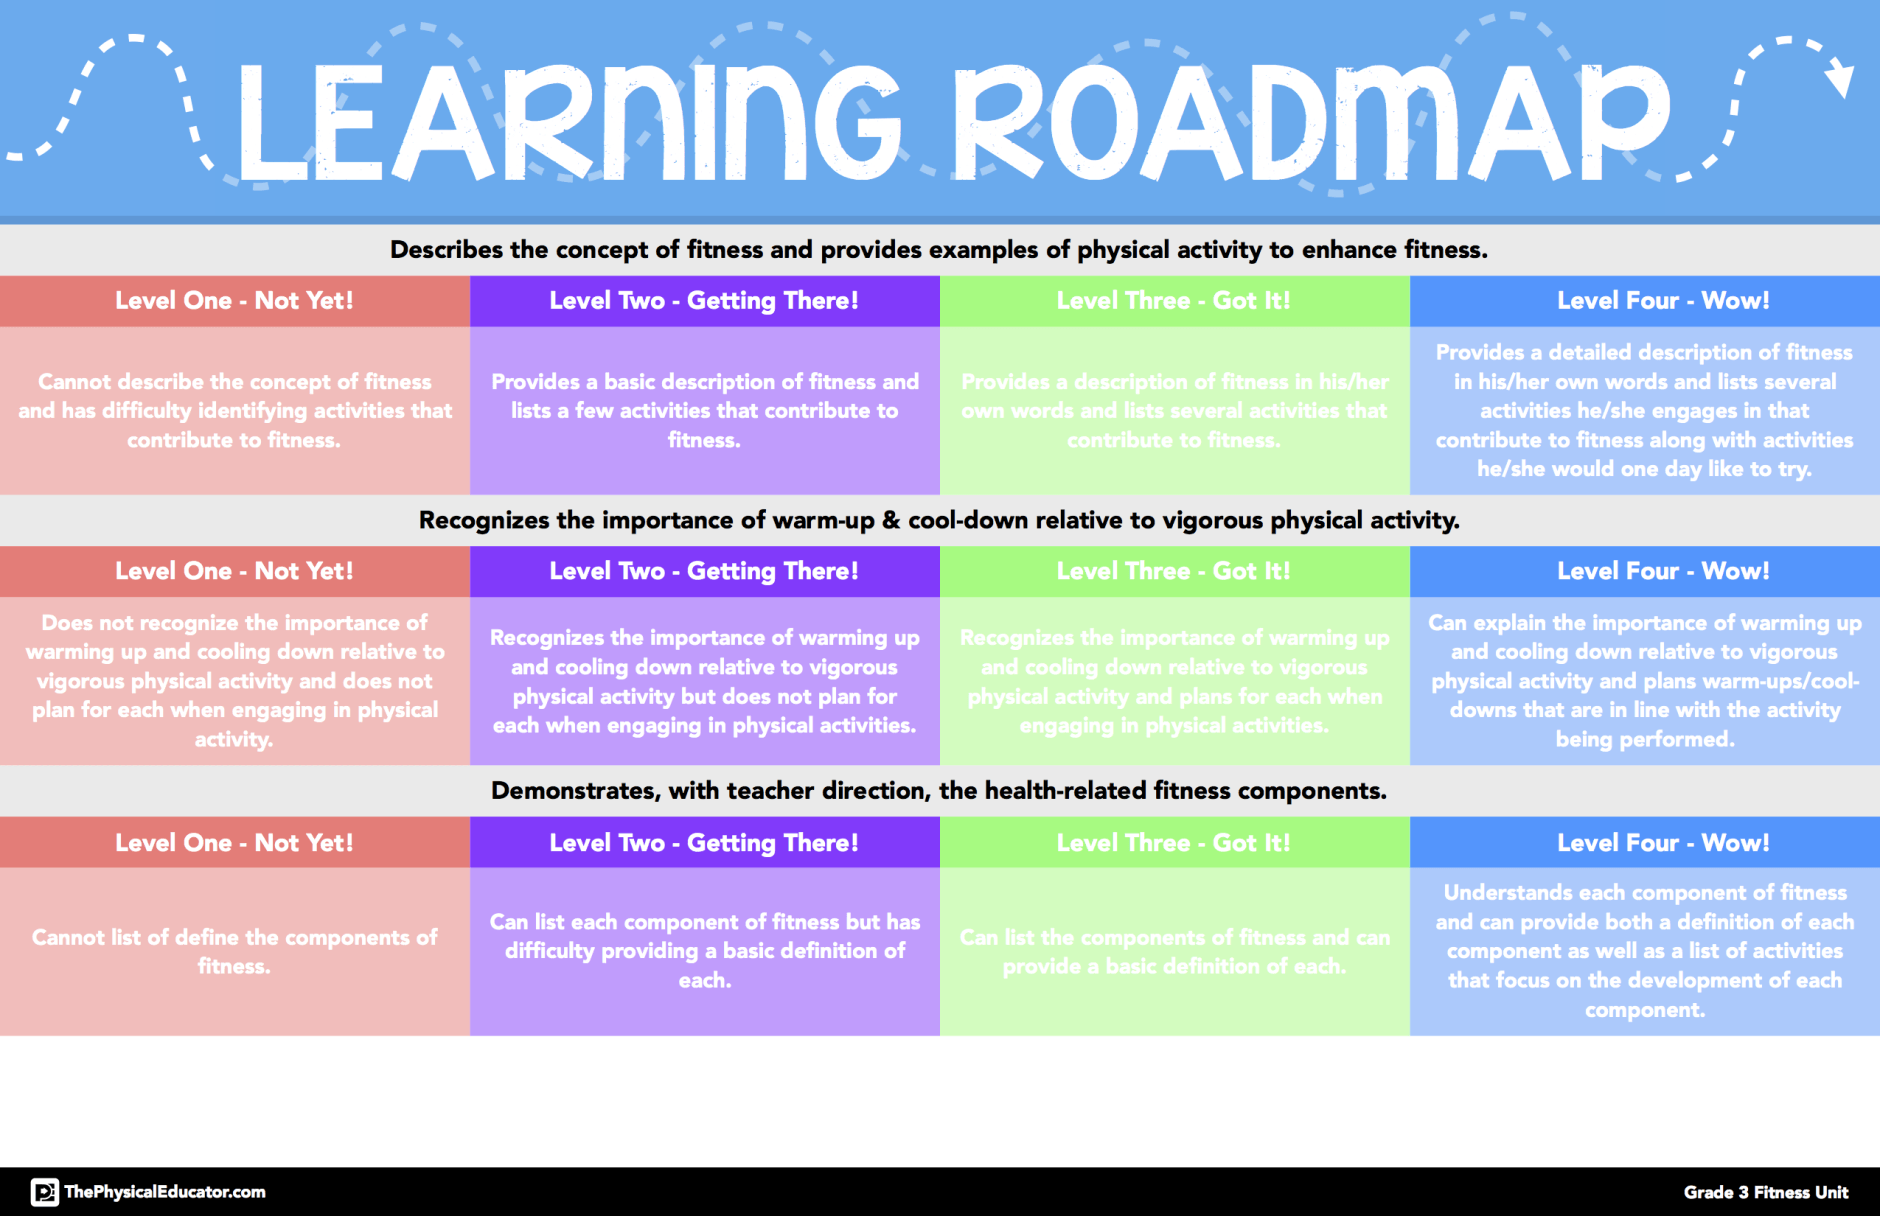 "PhysEd Learning Roadmaps is part of Physical education, Assessment for learning, Effective teaching, Learning, Assessment, Teaching - One of the areas of my teaching that I'm constantly trying to improve is my assessment  Assessment isn't really cool or exciting to talk about, but the reality is that it is a core component of effective teaching  As much as many of us shy away from talking about assessment in physical education, there is really no excuse for us not to be knocking our assessment practices out of the park  At least that's what I keep telling myself  In no way whatsoever do I think my assessment practices are perfect at times I have struggled to assess my students on an ongoing basis and I have failed to communicate what evidence I have collected to them in a timely manner that actually serves their growth and learning  The reality is that, given the chaotic, dynamic nature of physical education, assessing throughout my lessons is difficult (I can't be the only one feeling this way)  Again though, that's just an excuse I kept telling myself  There is always a way  Over the past year, I have had some success with my assessment  This blog post is about one of the major successes I've had my PhysEd Learning Roadmaps  Before I share the roadmap tool with you, let me give you a bit of a back story about where the idea came from A few years back, I stumbled upon the work of my friend Sarah GietschierHartman  Sarah had been introducing rubrics to her students using a ""cupcake analogy"" (you can actually learn all about the cupcake analogy in this blog post by Sarah)  The idea was pretty straightforward to help students understand what the different levels of mastery look like by using language they are comfortable with  As I continued to watch Sarah's work, I noticed that she eventually moved away from the cupcake    Continue Reading"